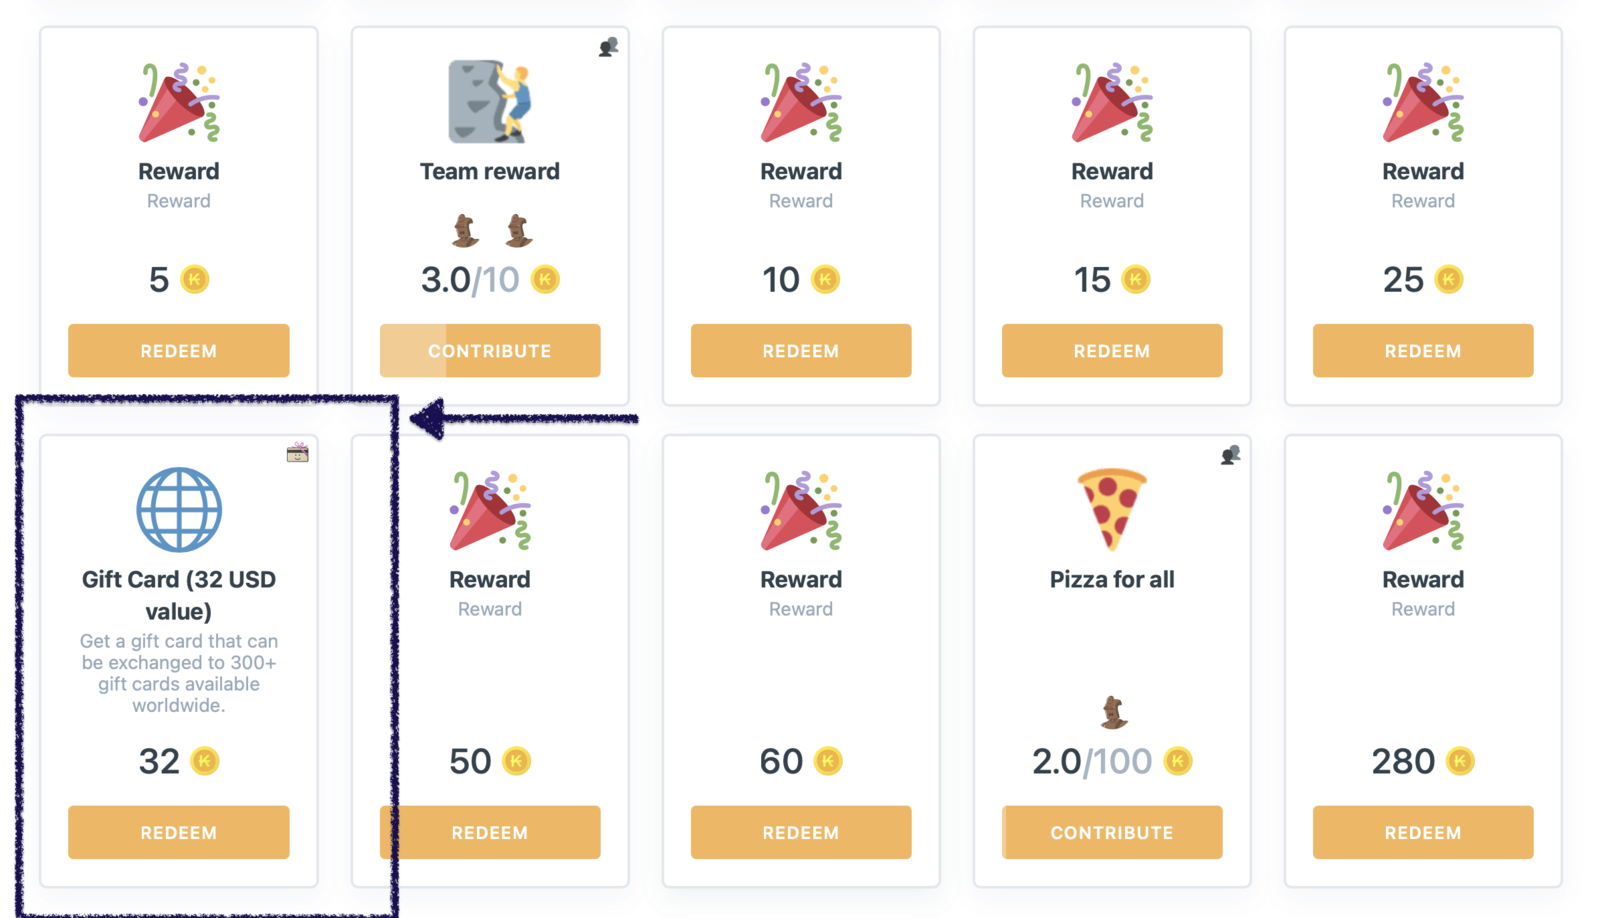 This is how Gift Card reward is displayed on the web panel